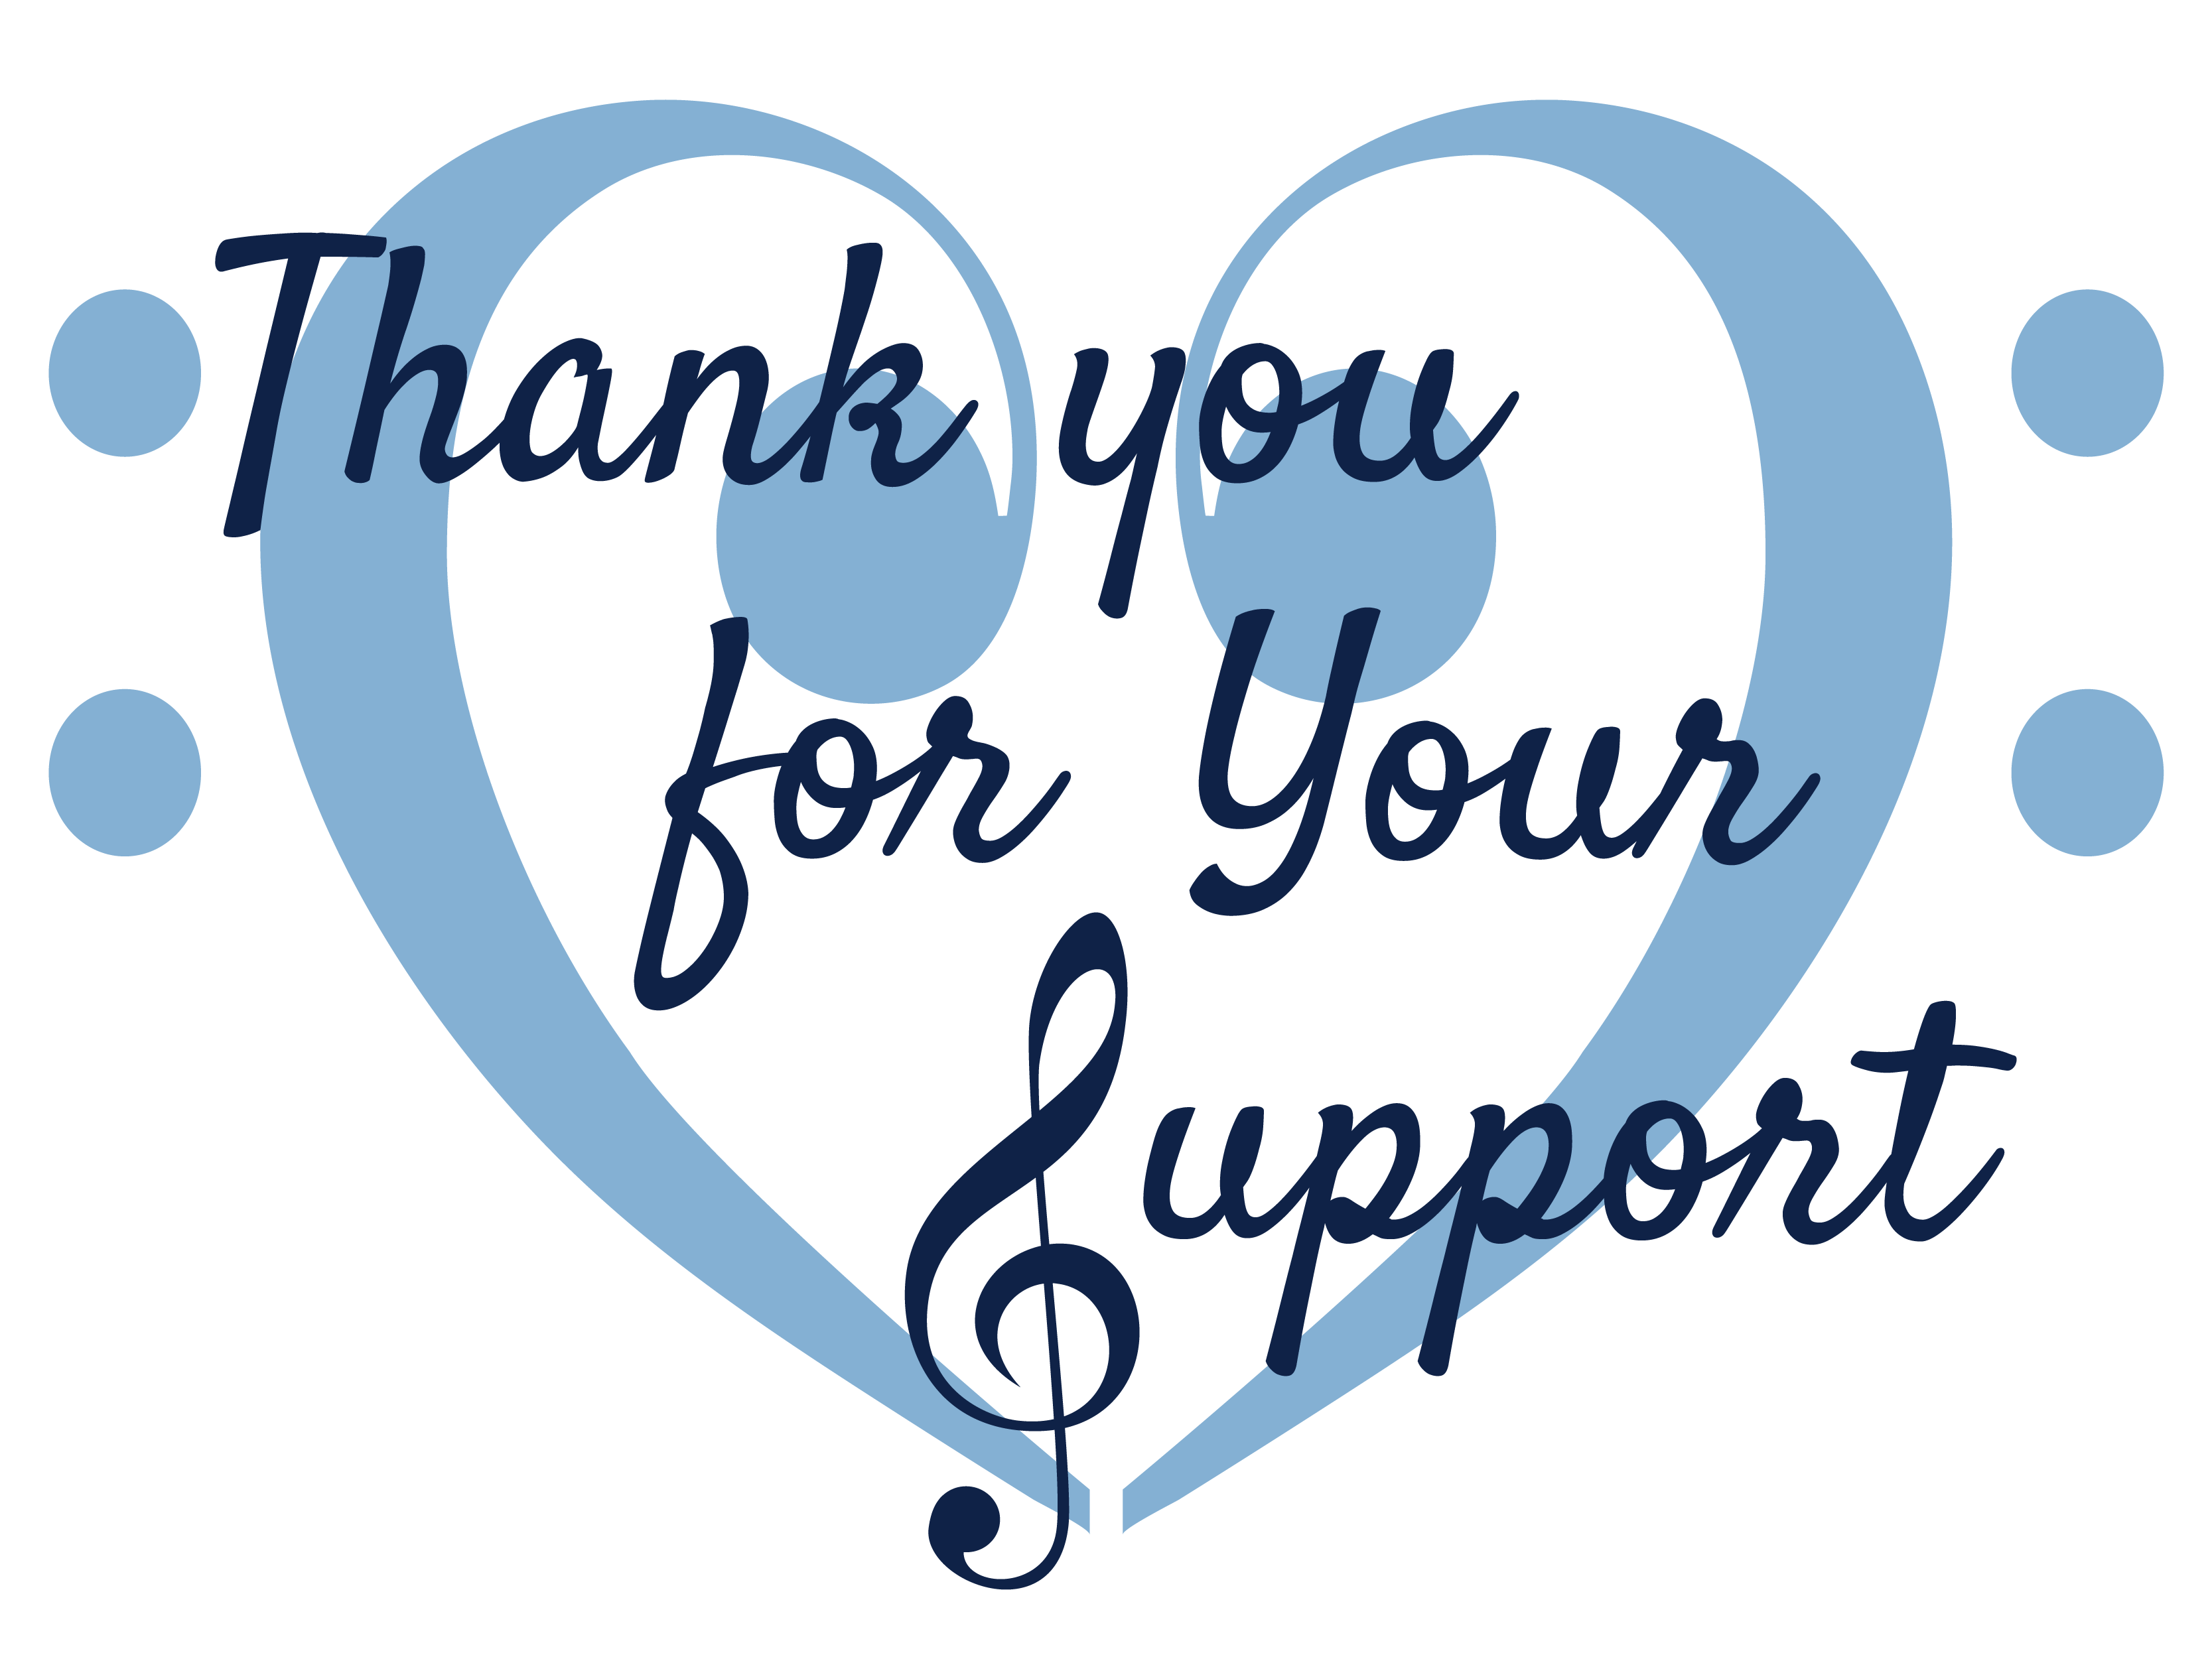 Thanks clipart tahnk, Thanks tahnk Transparent FREE for.